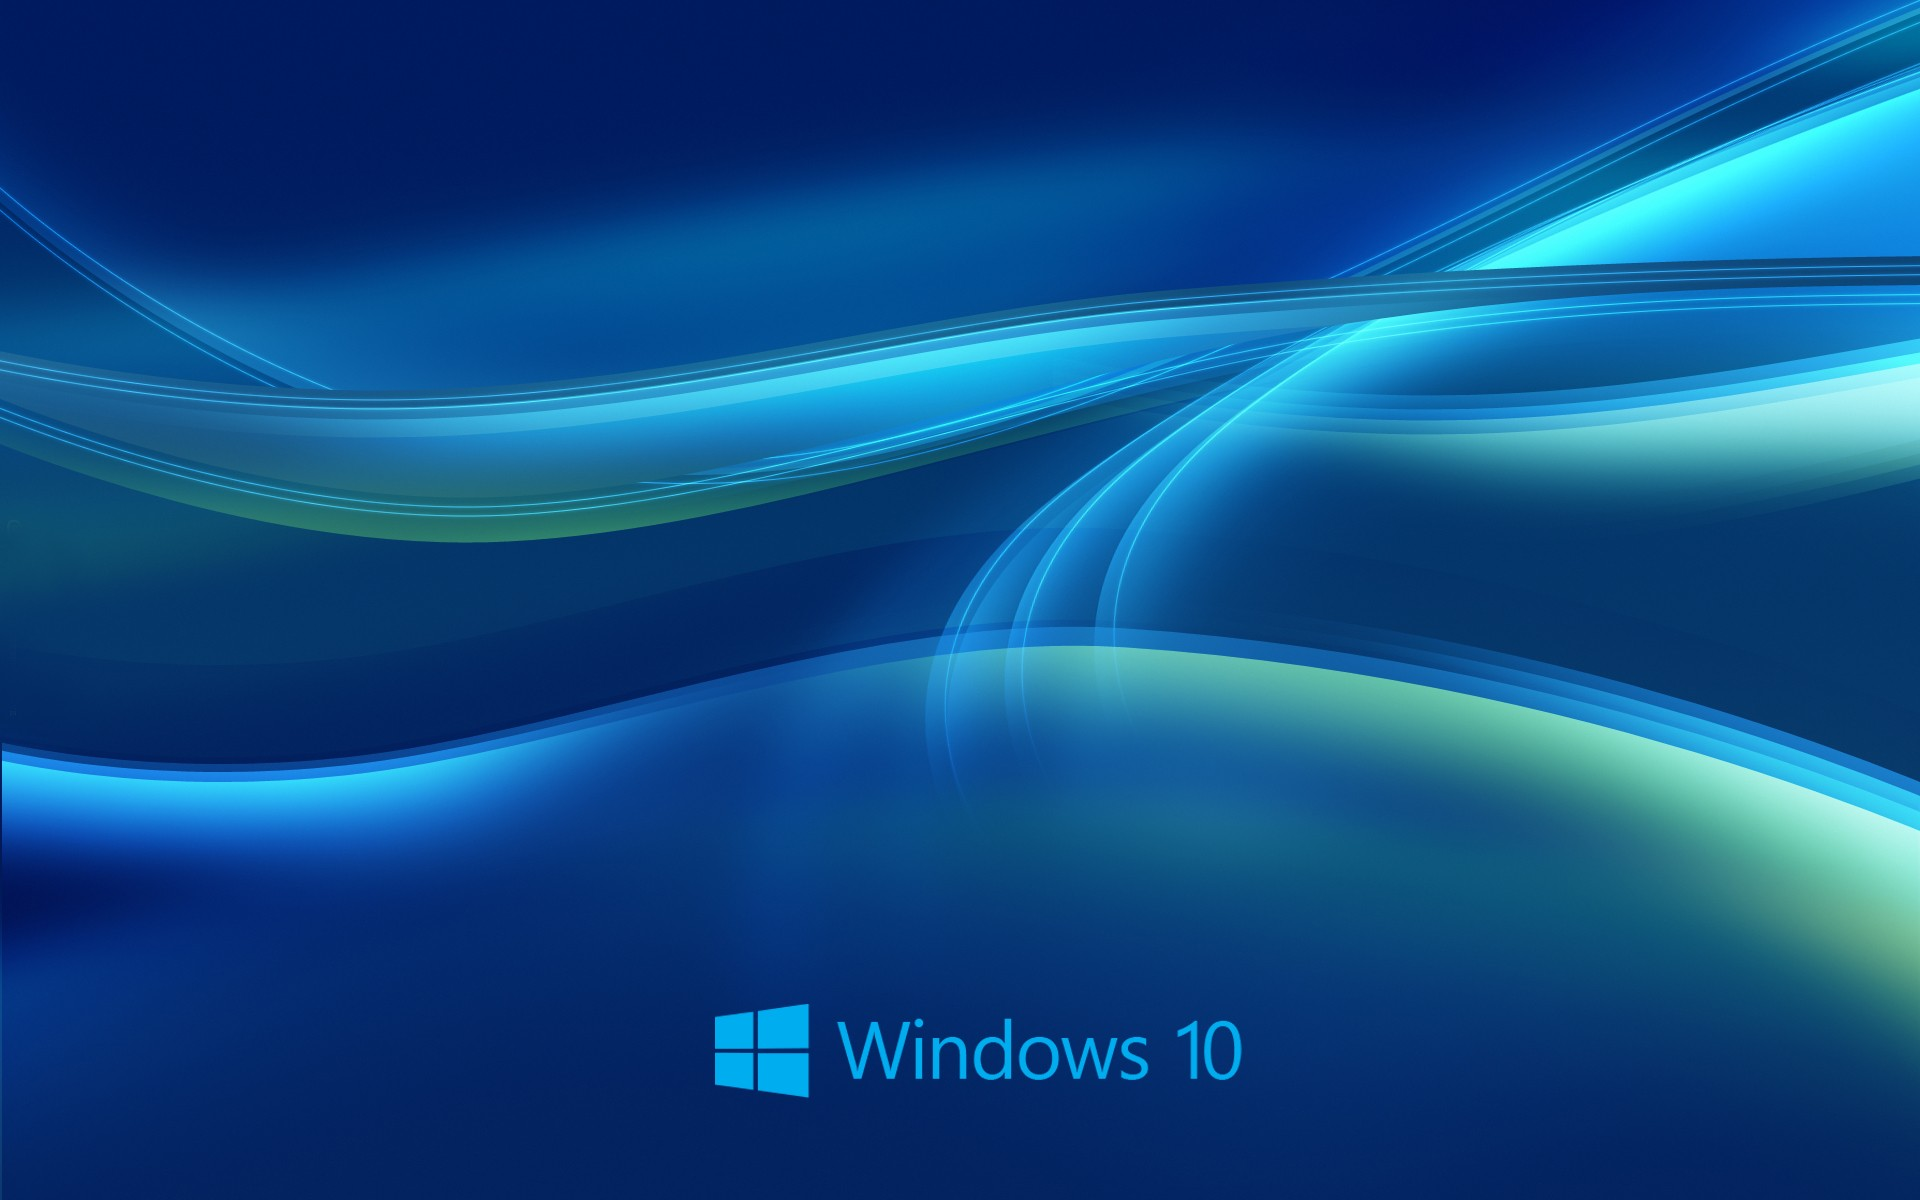 45 Cool Windows 10 Backgrounds Download Free Amazing Wallpapers